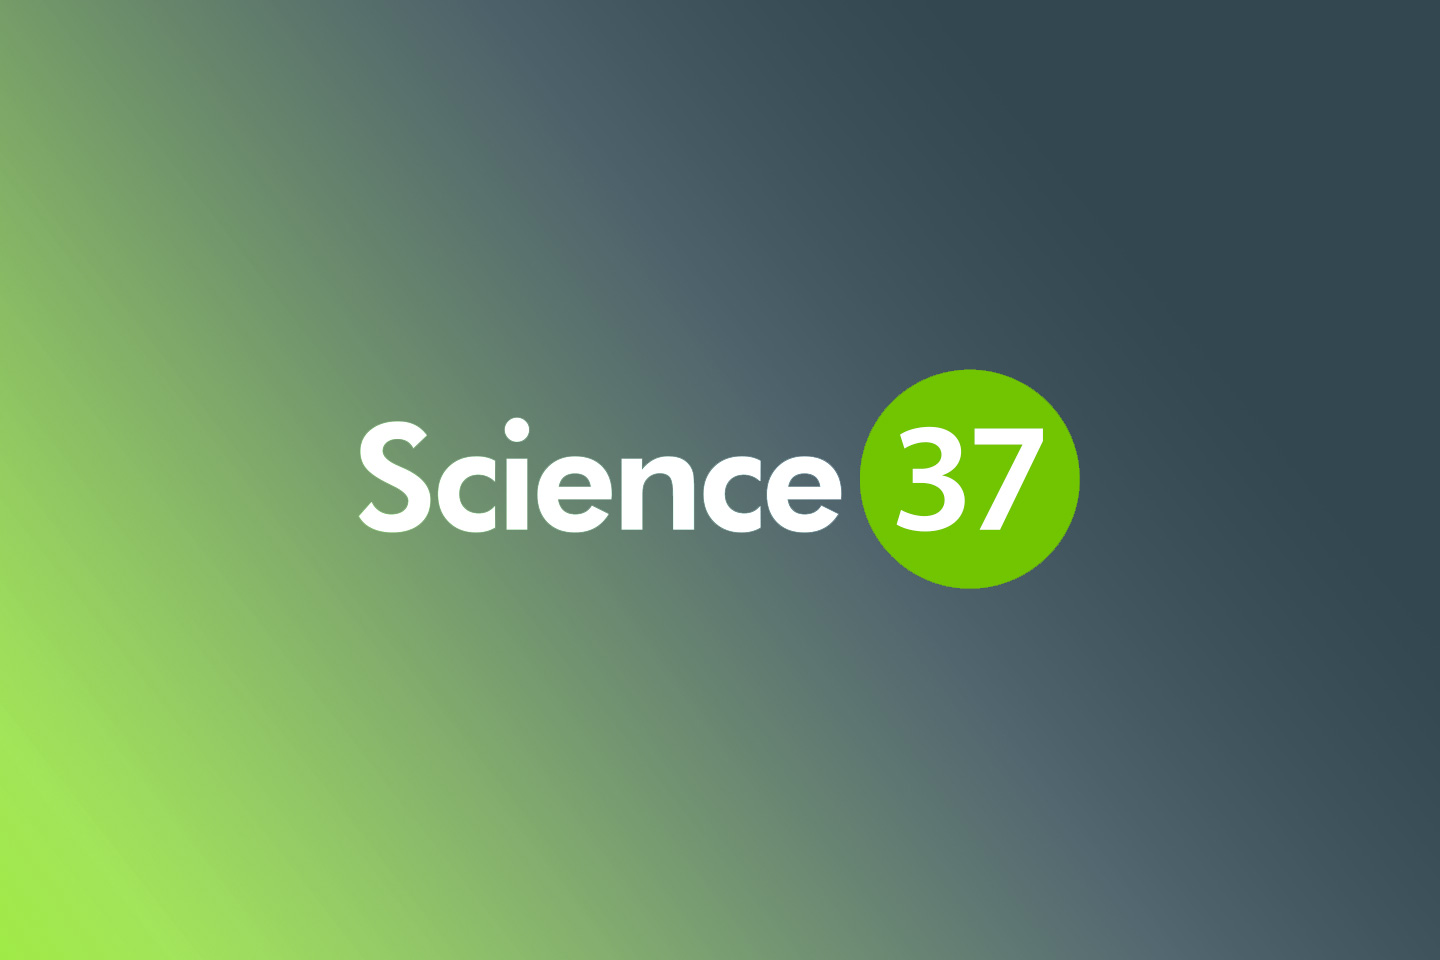 Science 37 Raises $35M in Funding to Continue to Drive Growth – Announces Leadership Transition